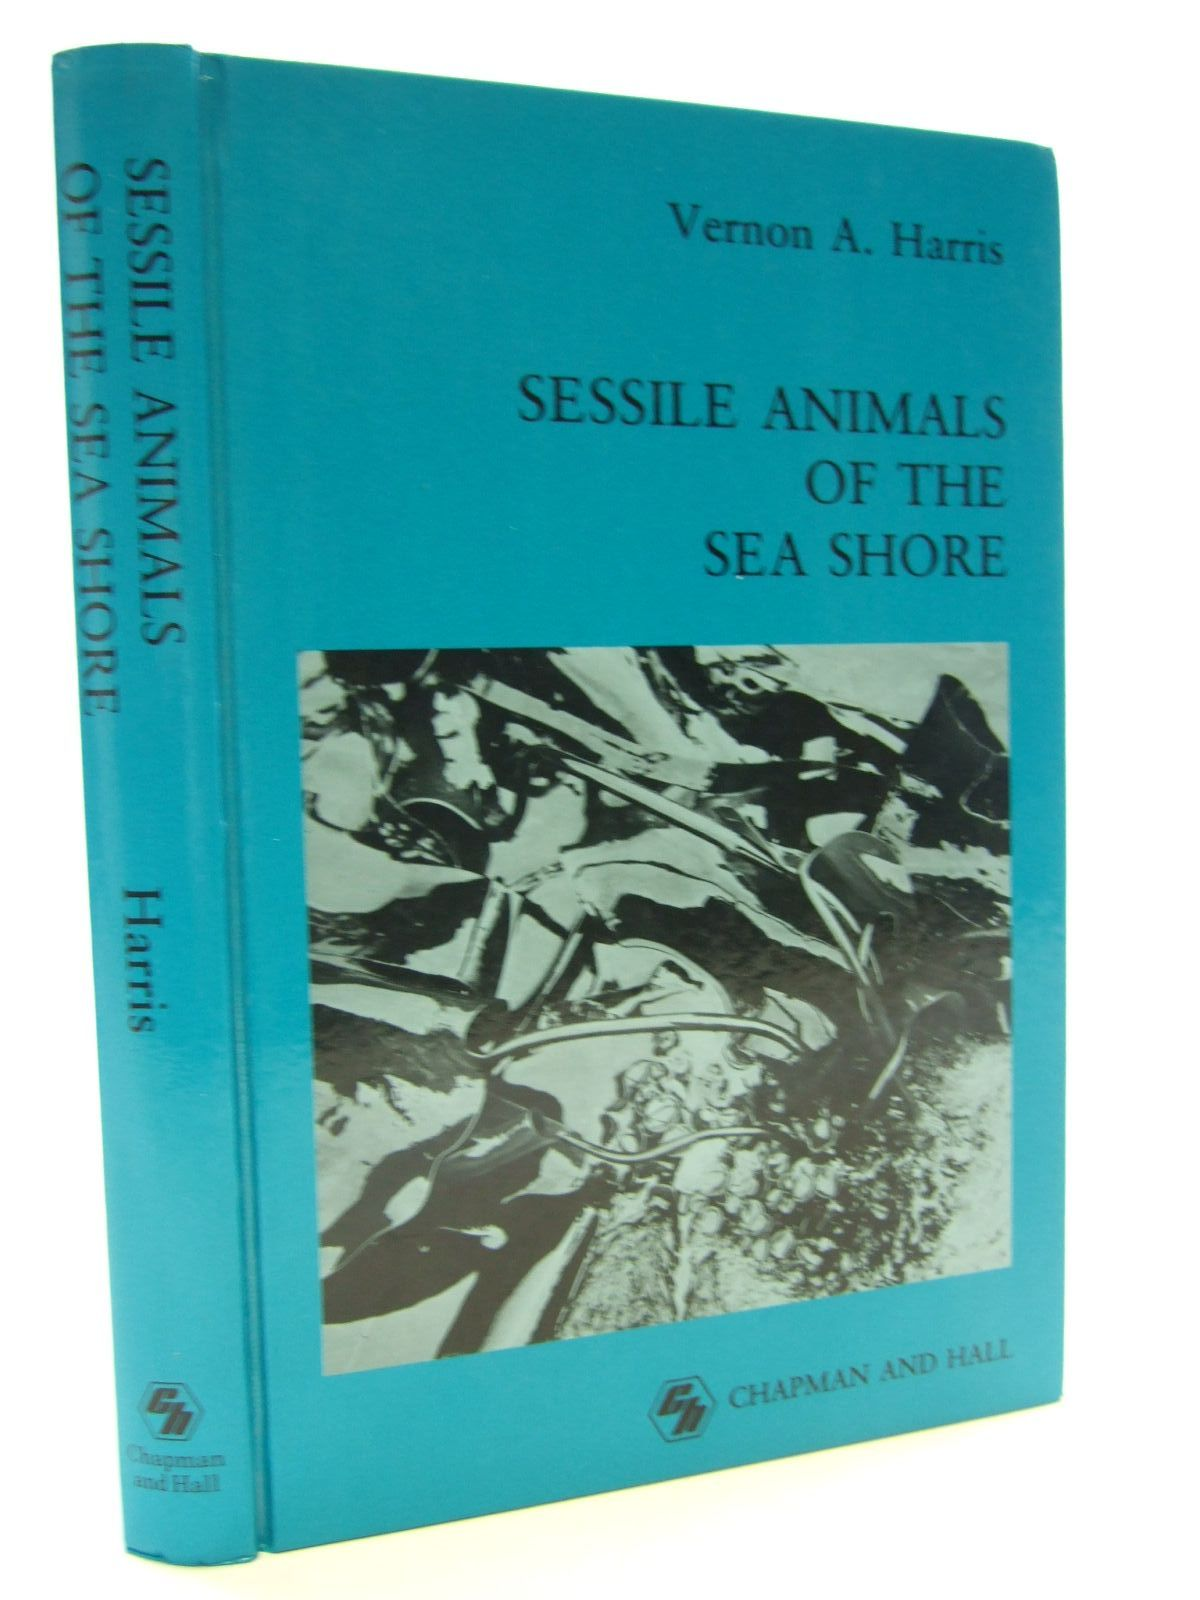 Photo of SESSILE ANIMALS OF THE SEA SHORE written by Harris, Vernon A. published by Chapman & Hall (STOCK CODE: 1805653)  for sale by Stella & Rose's Books